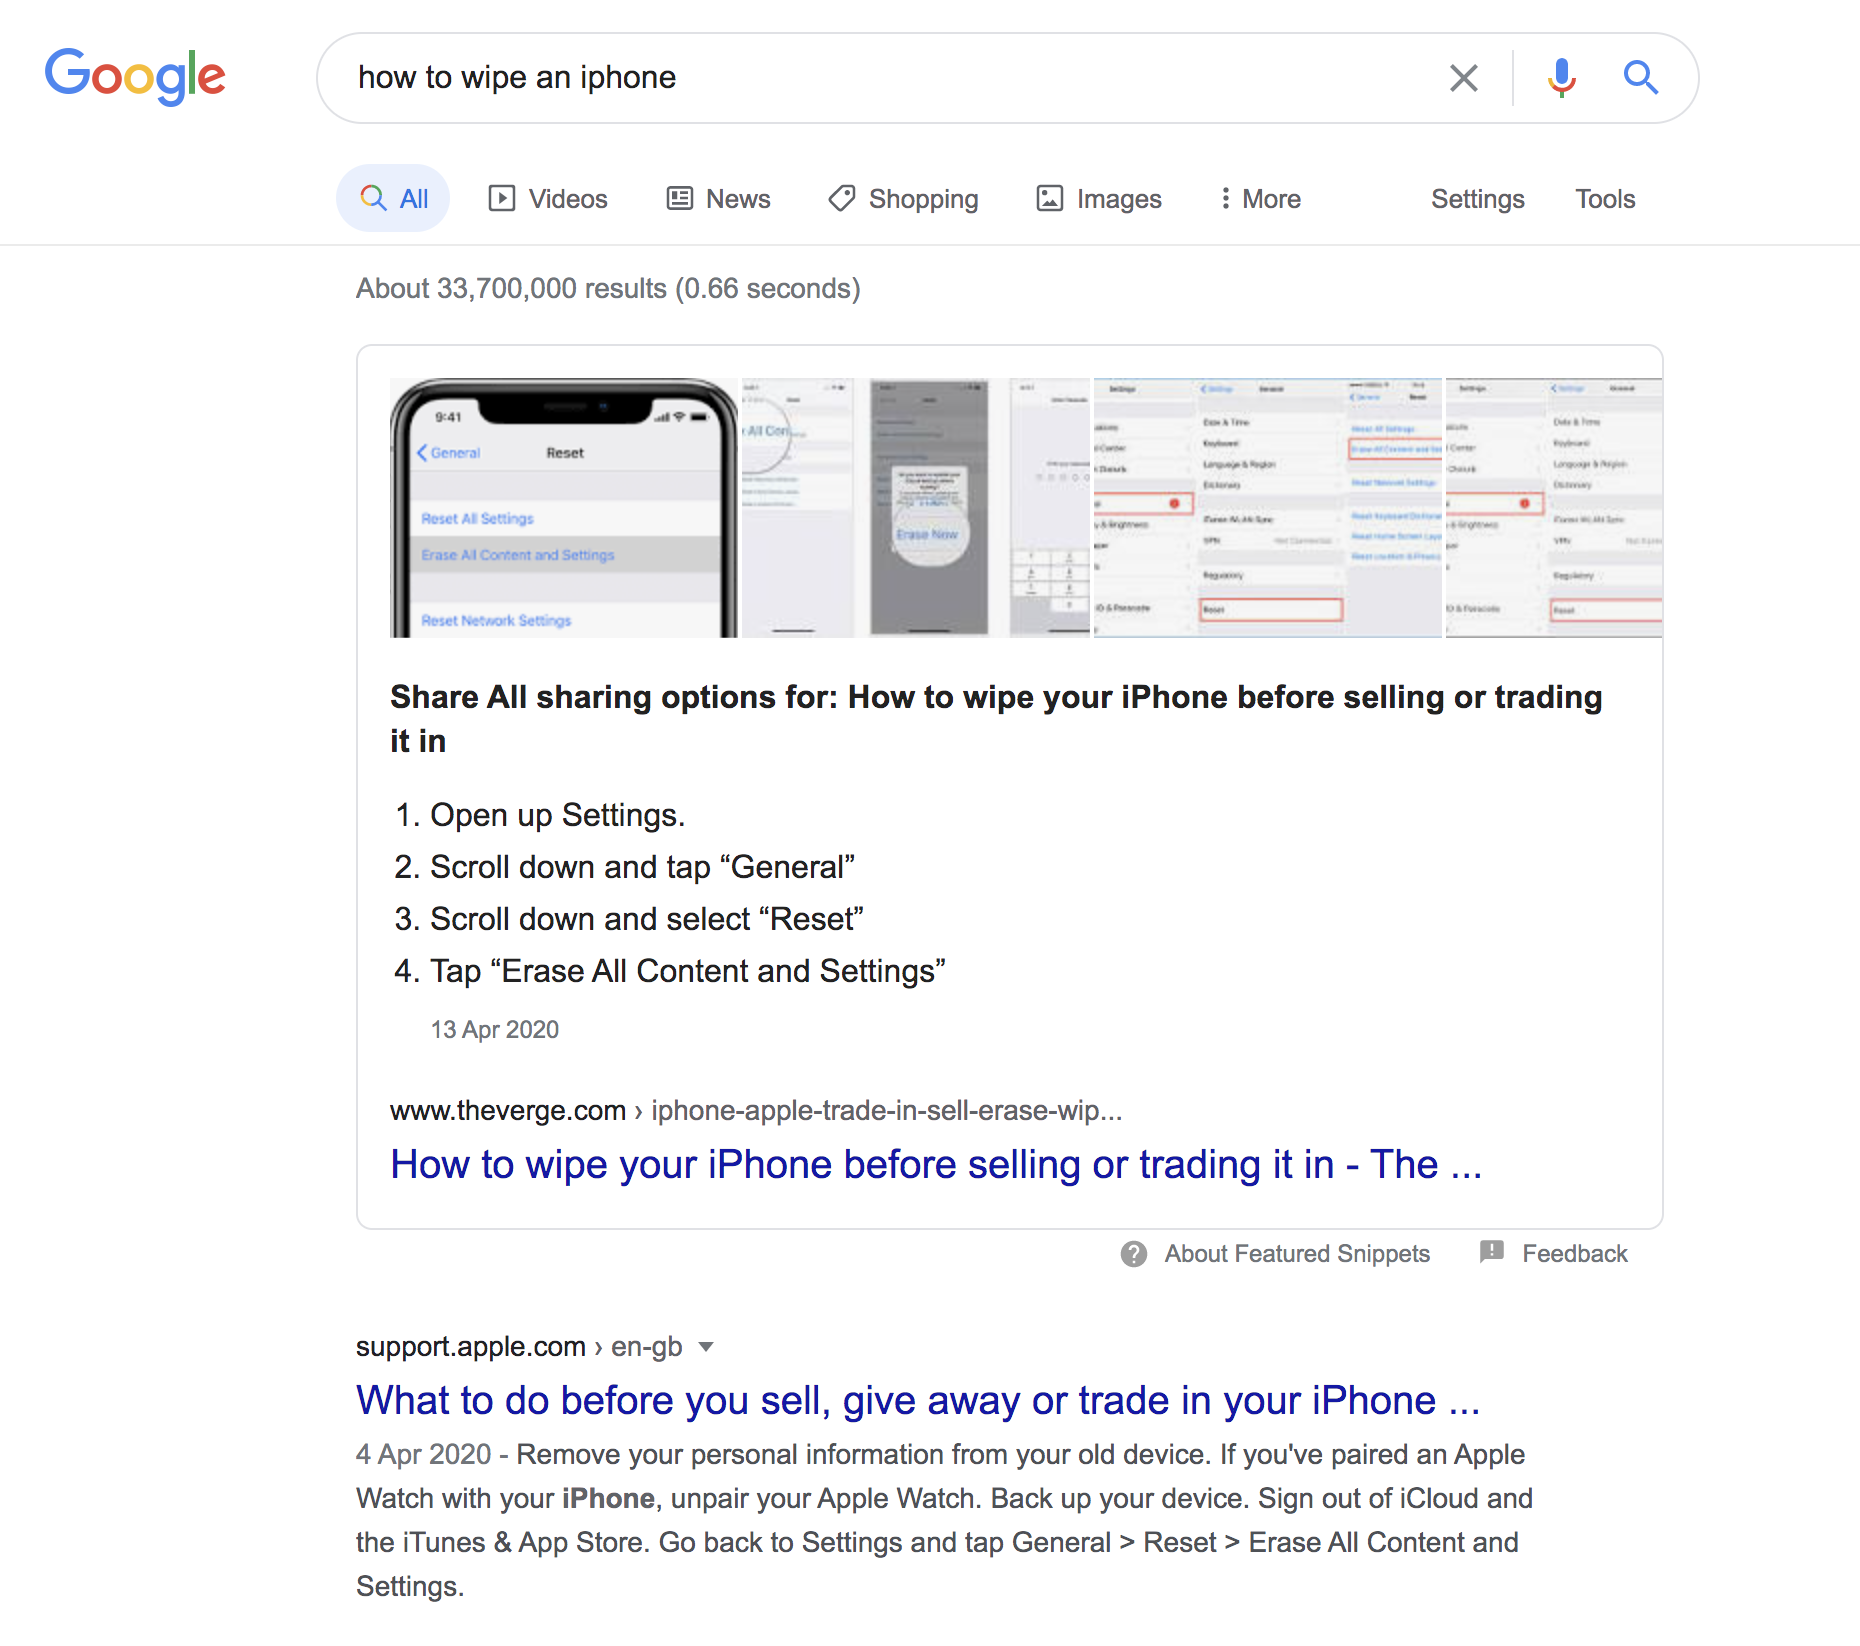 How to wipe an iPhone featured snippet screenshot